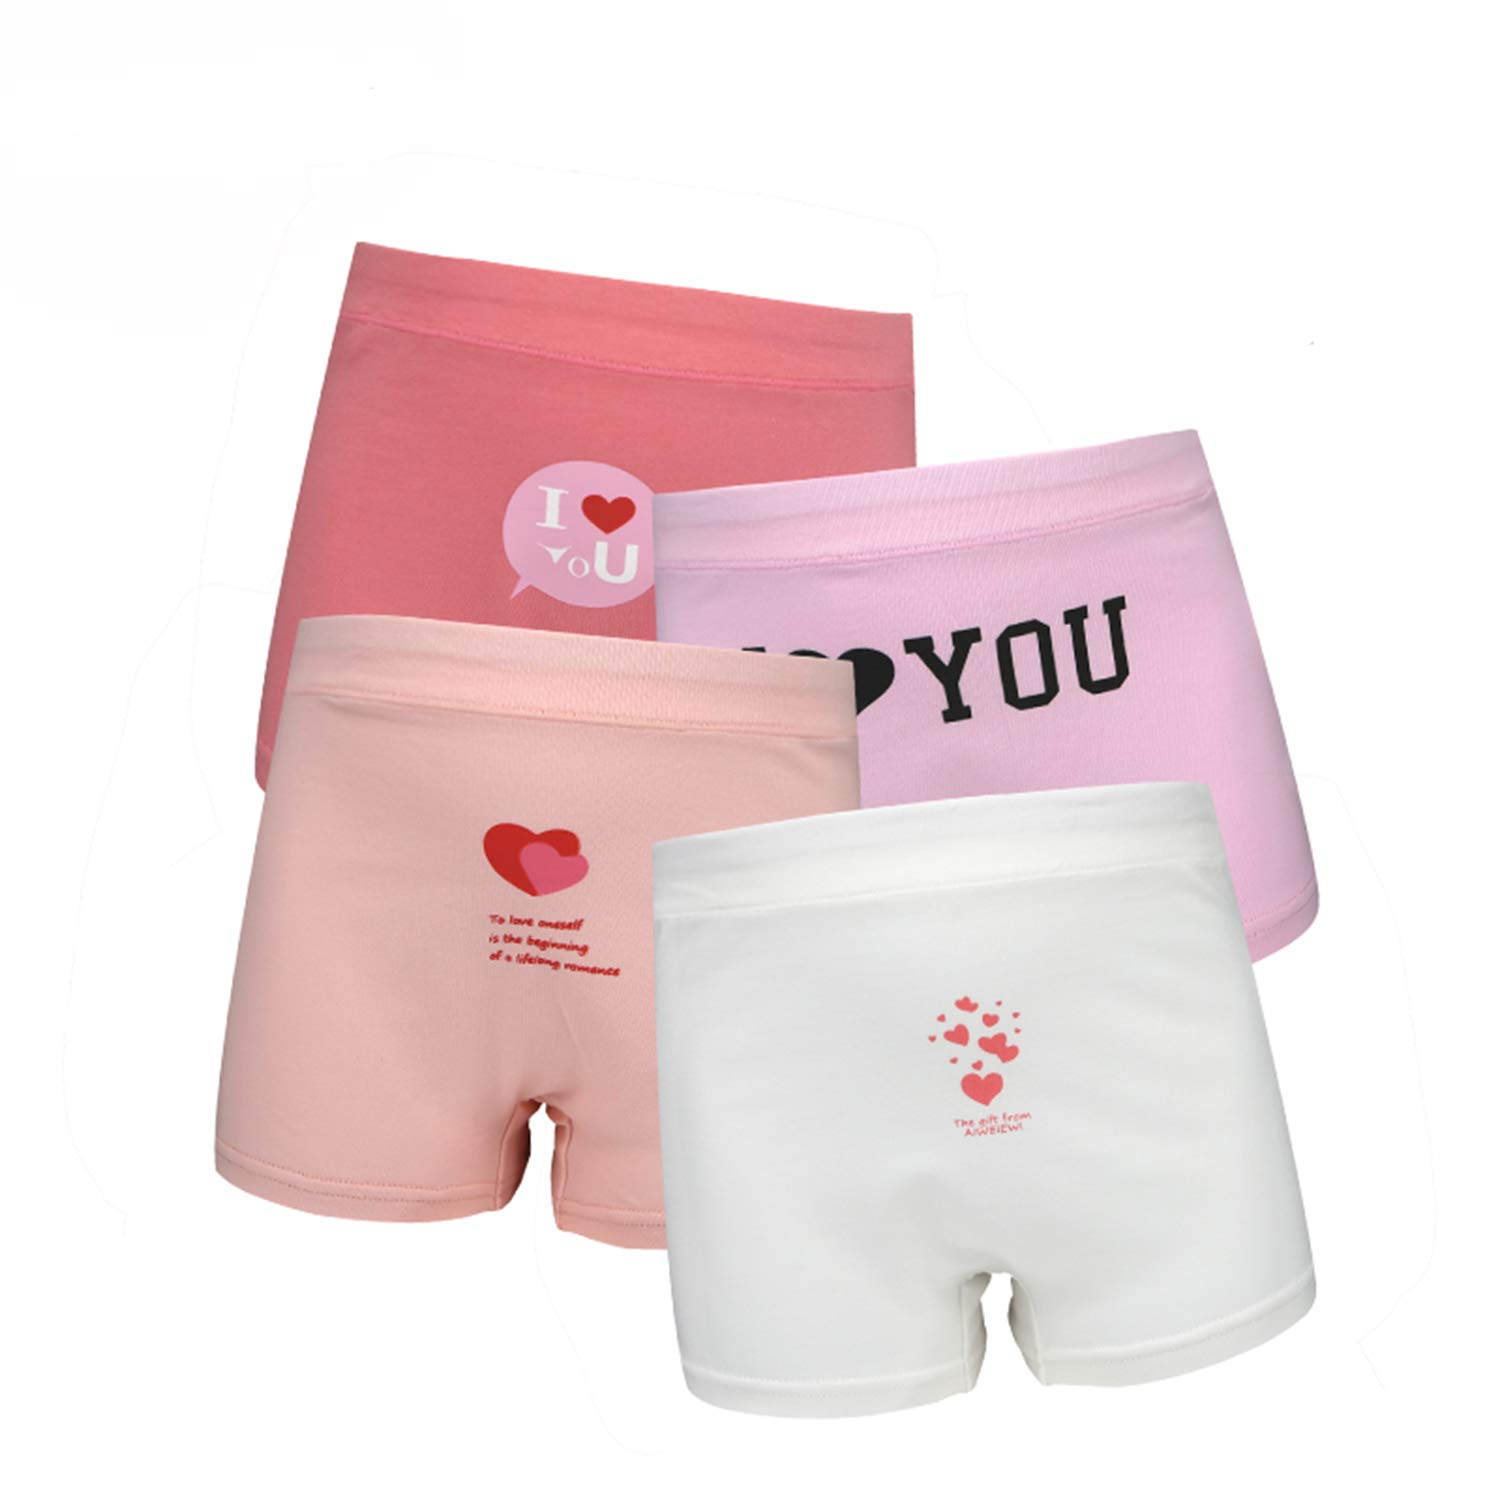 SIVICE Young Girls Panties Girls Underwear Panty Models Love Heart Style Pack of 4 (S)